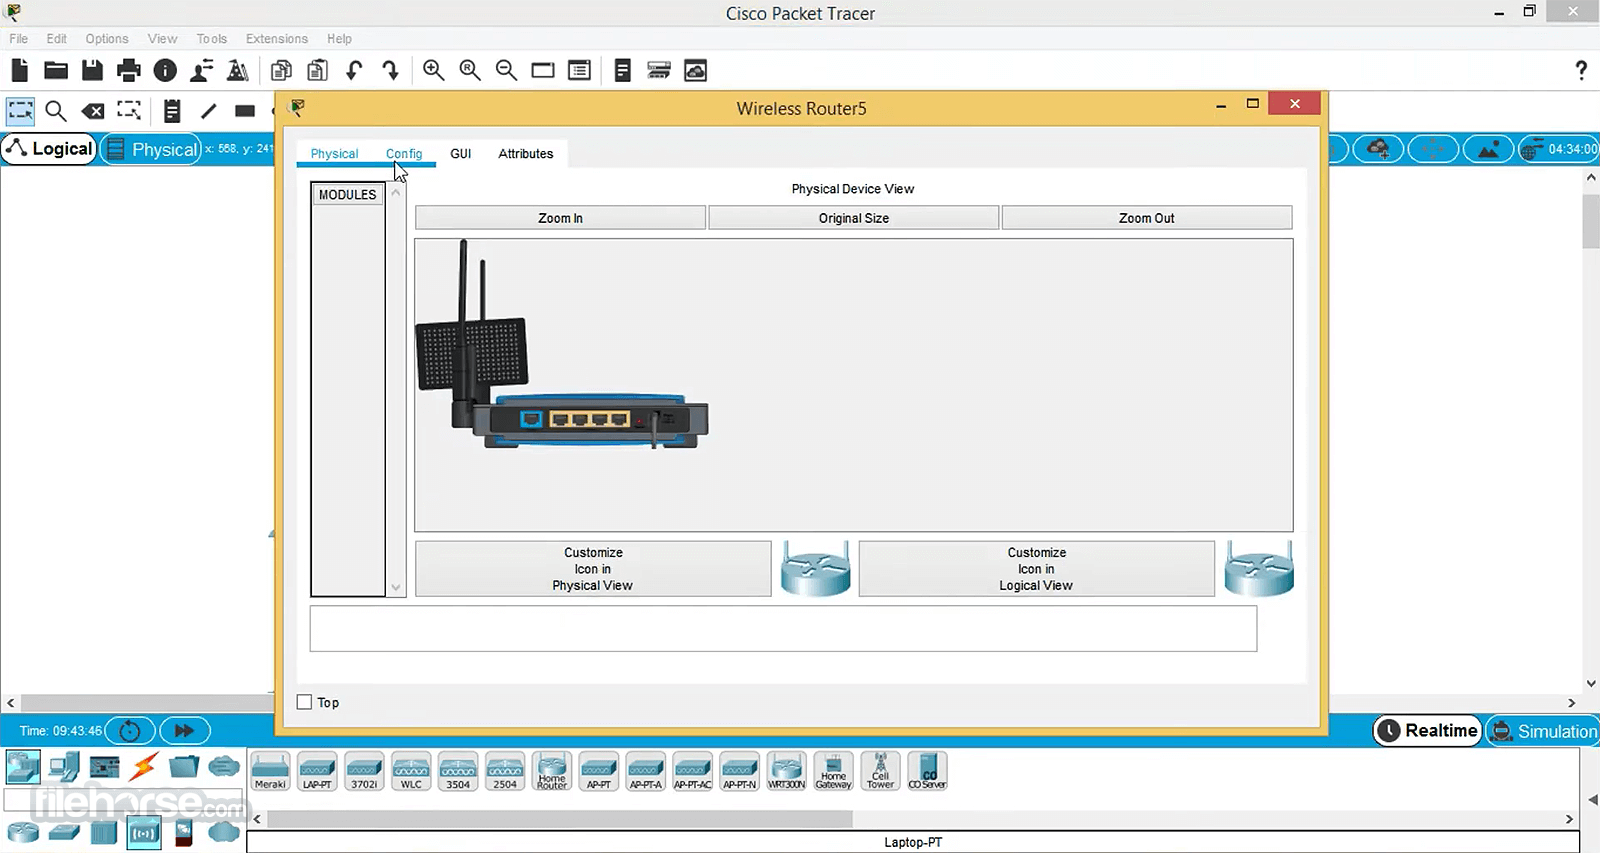 TÉLÉCHARGER CISCO PACKET TRACER 5.3.1 GRATUITEMENT